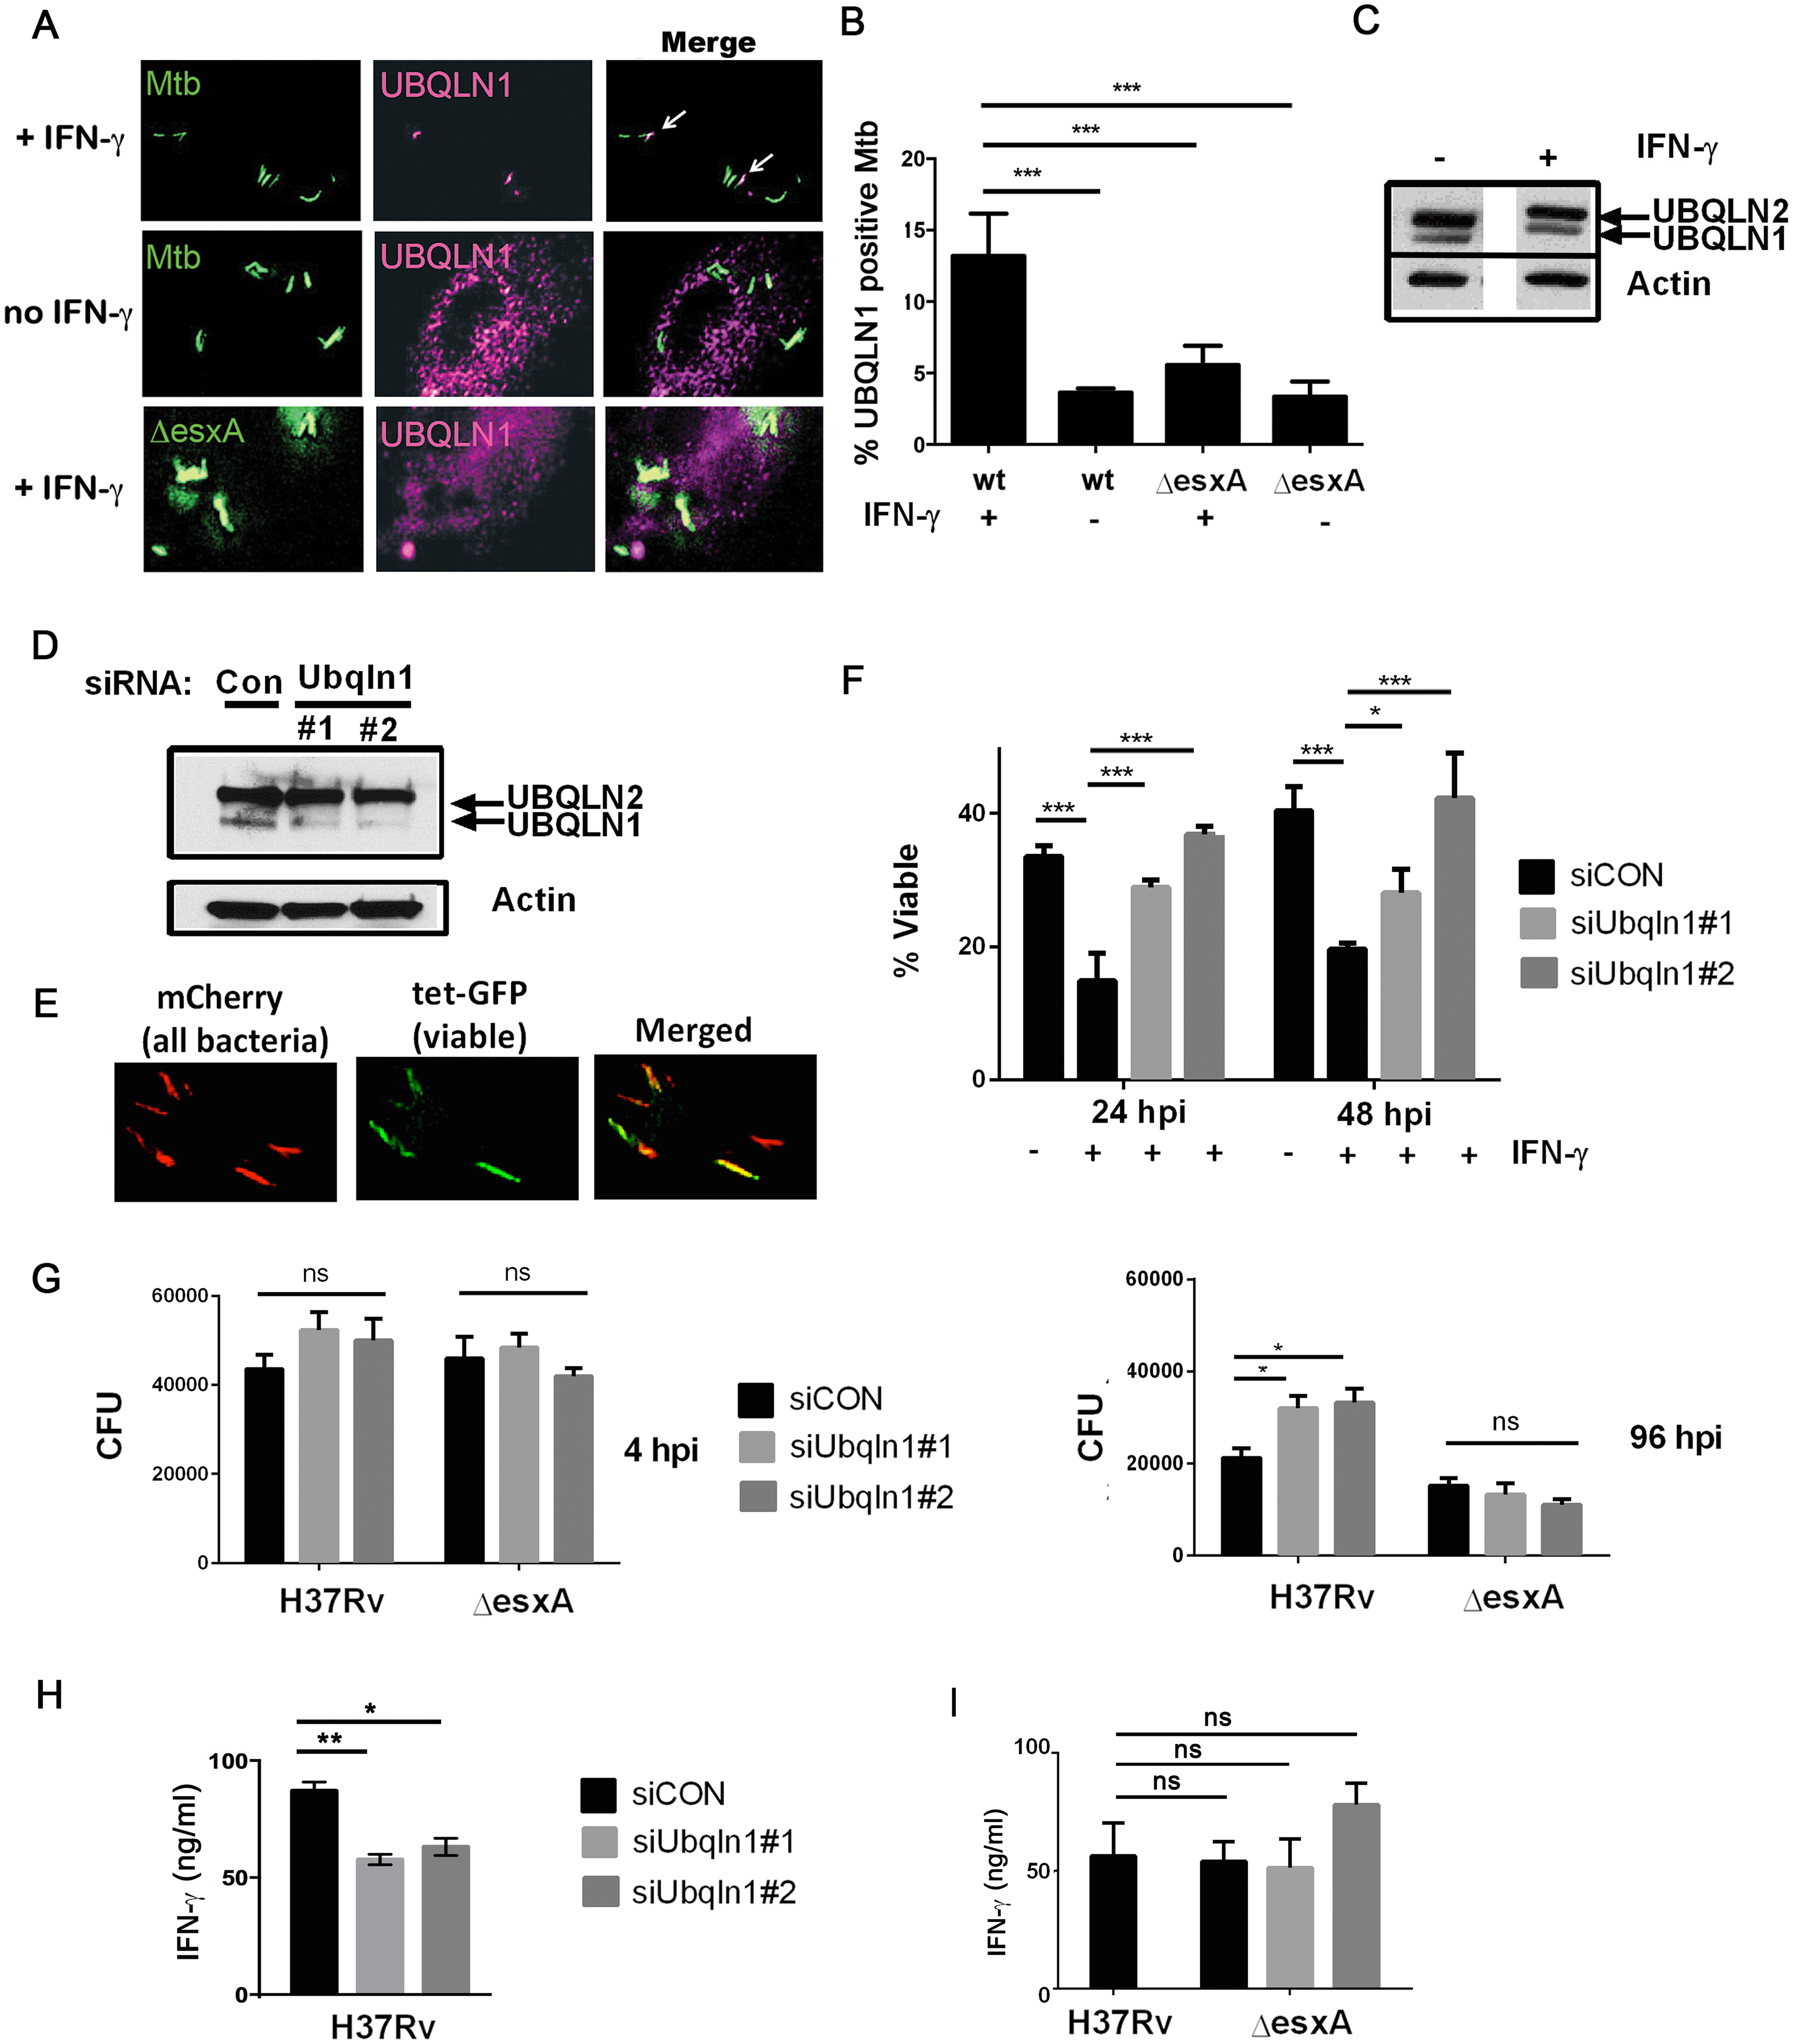 UBQLN1 localizes to Mtb, restricts its growth, and promotes the ability of macrophages to active CD4+ T cell.